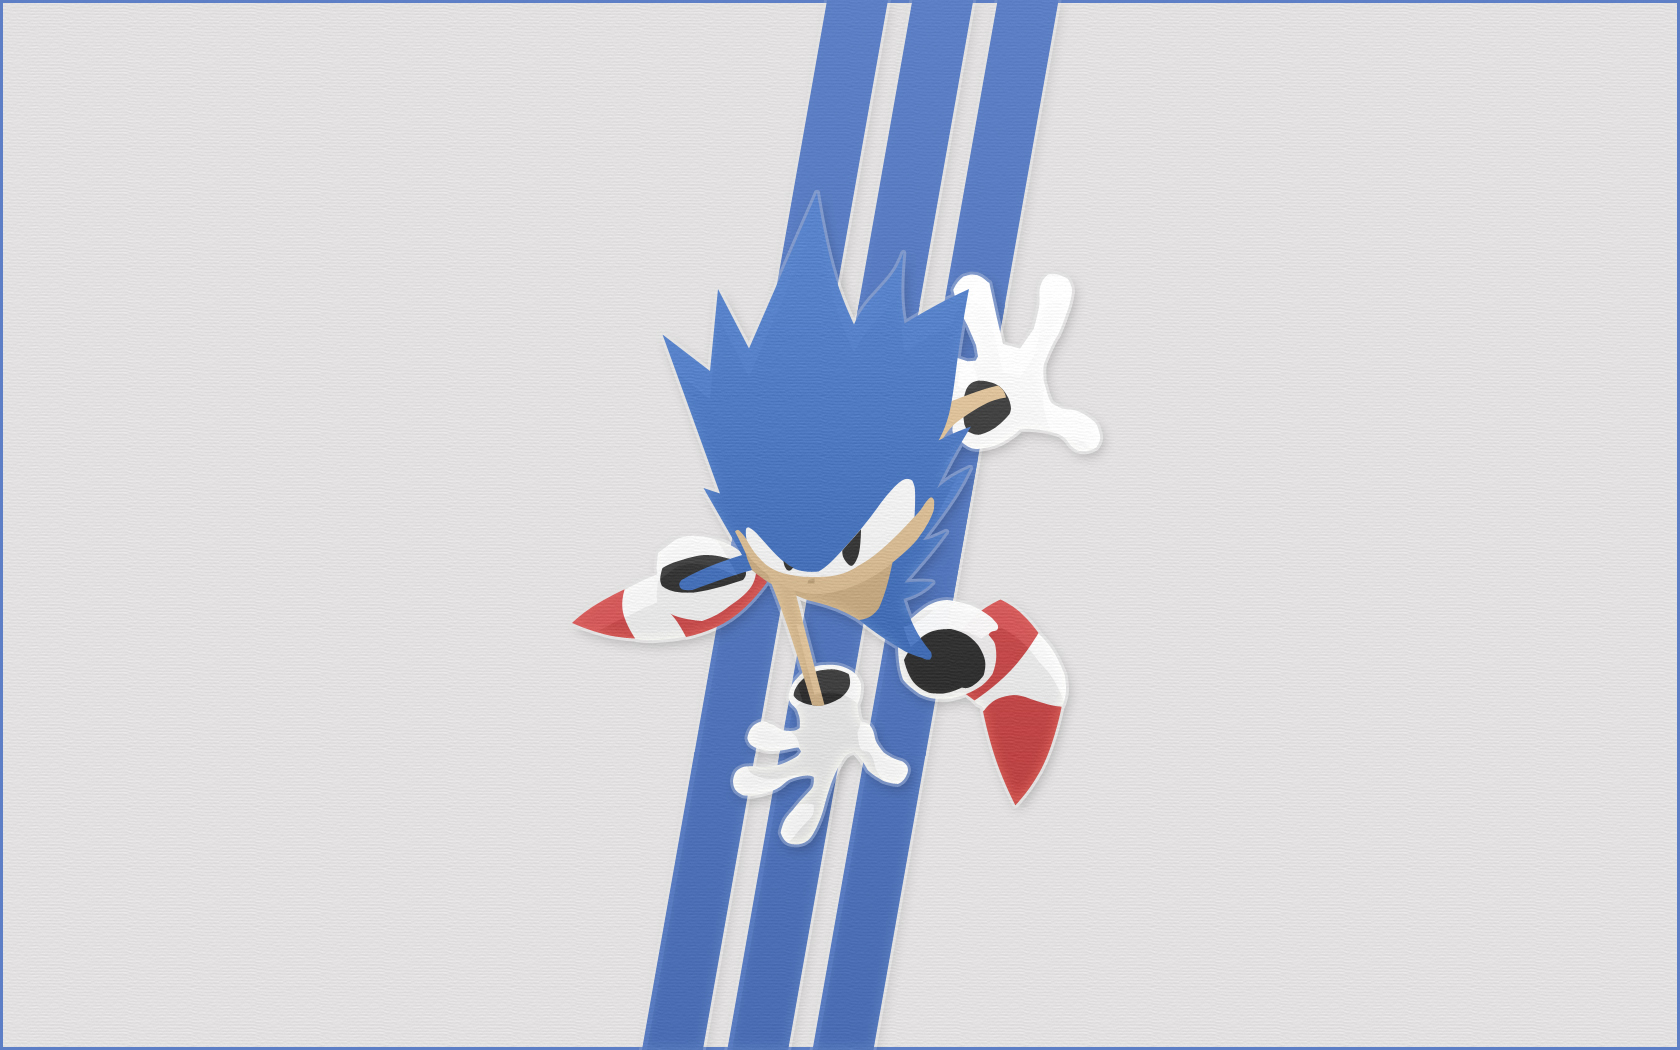 wallpaper sonic blue - photo #43